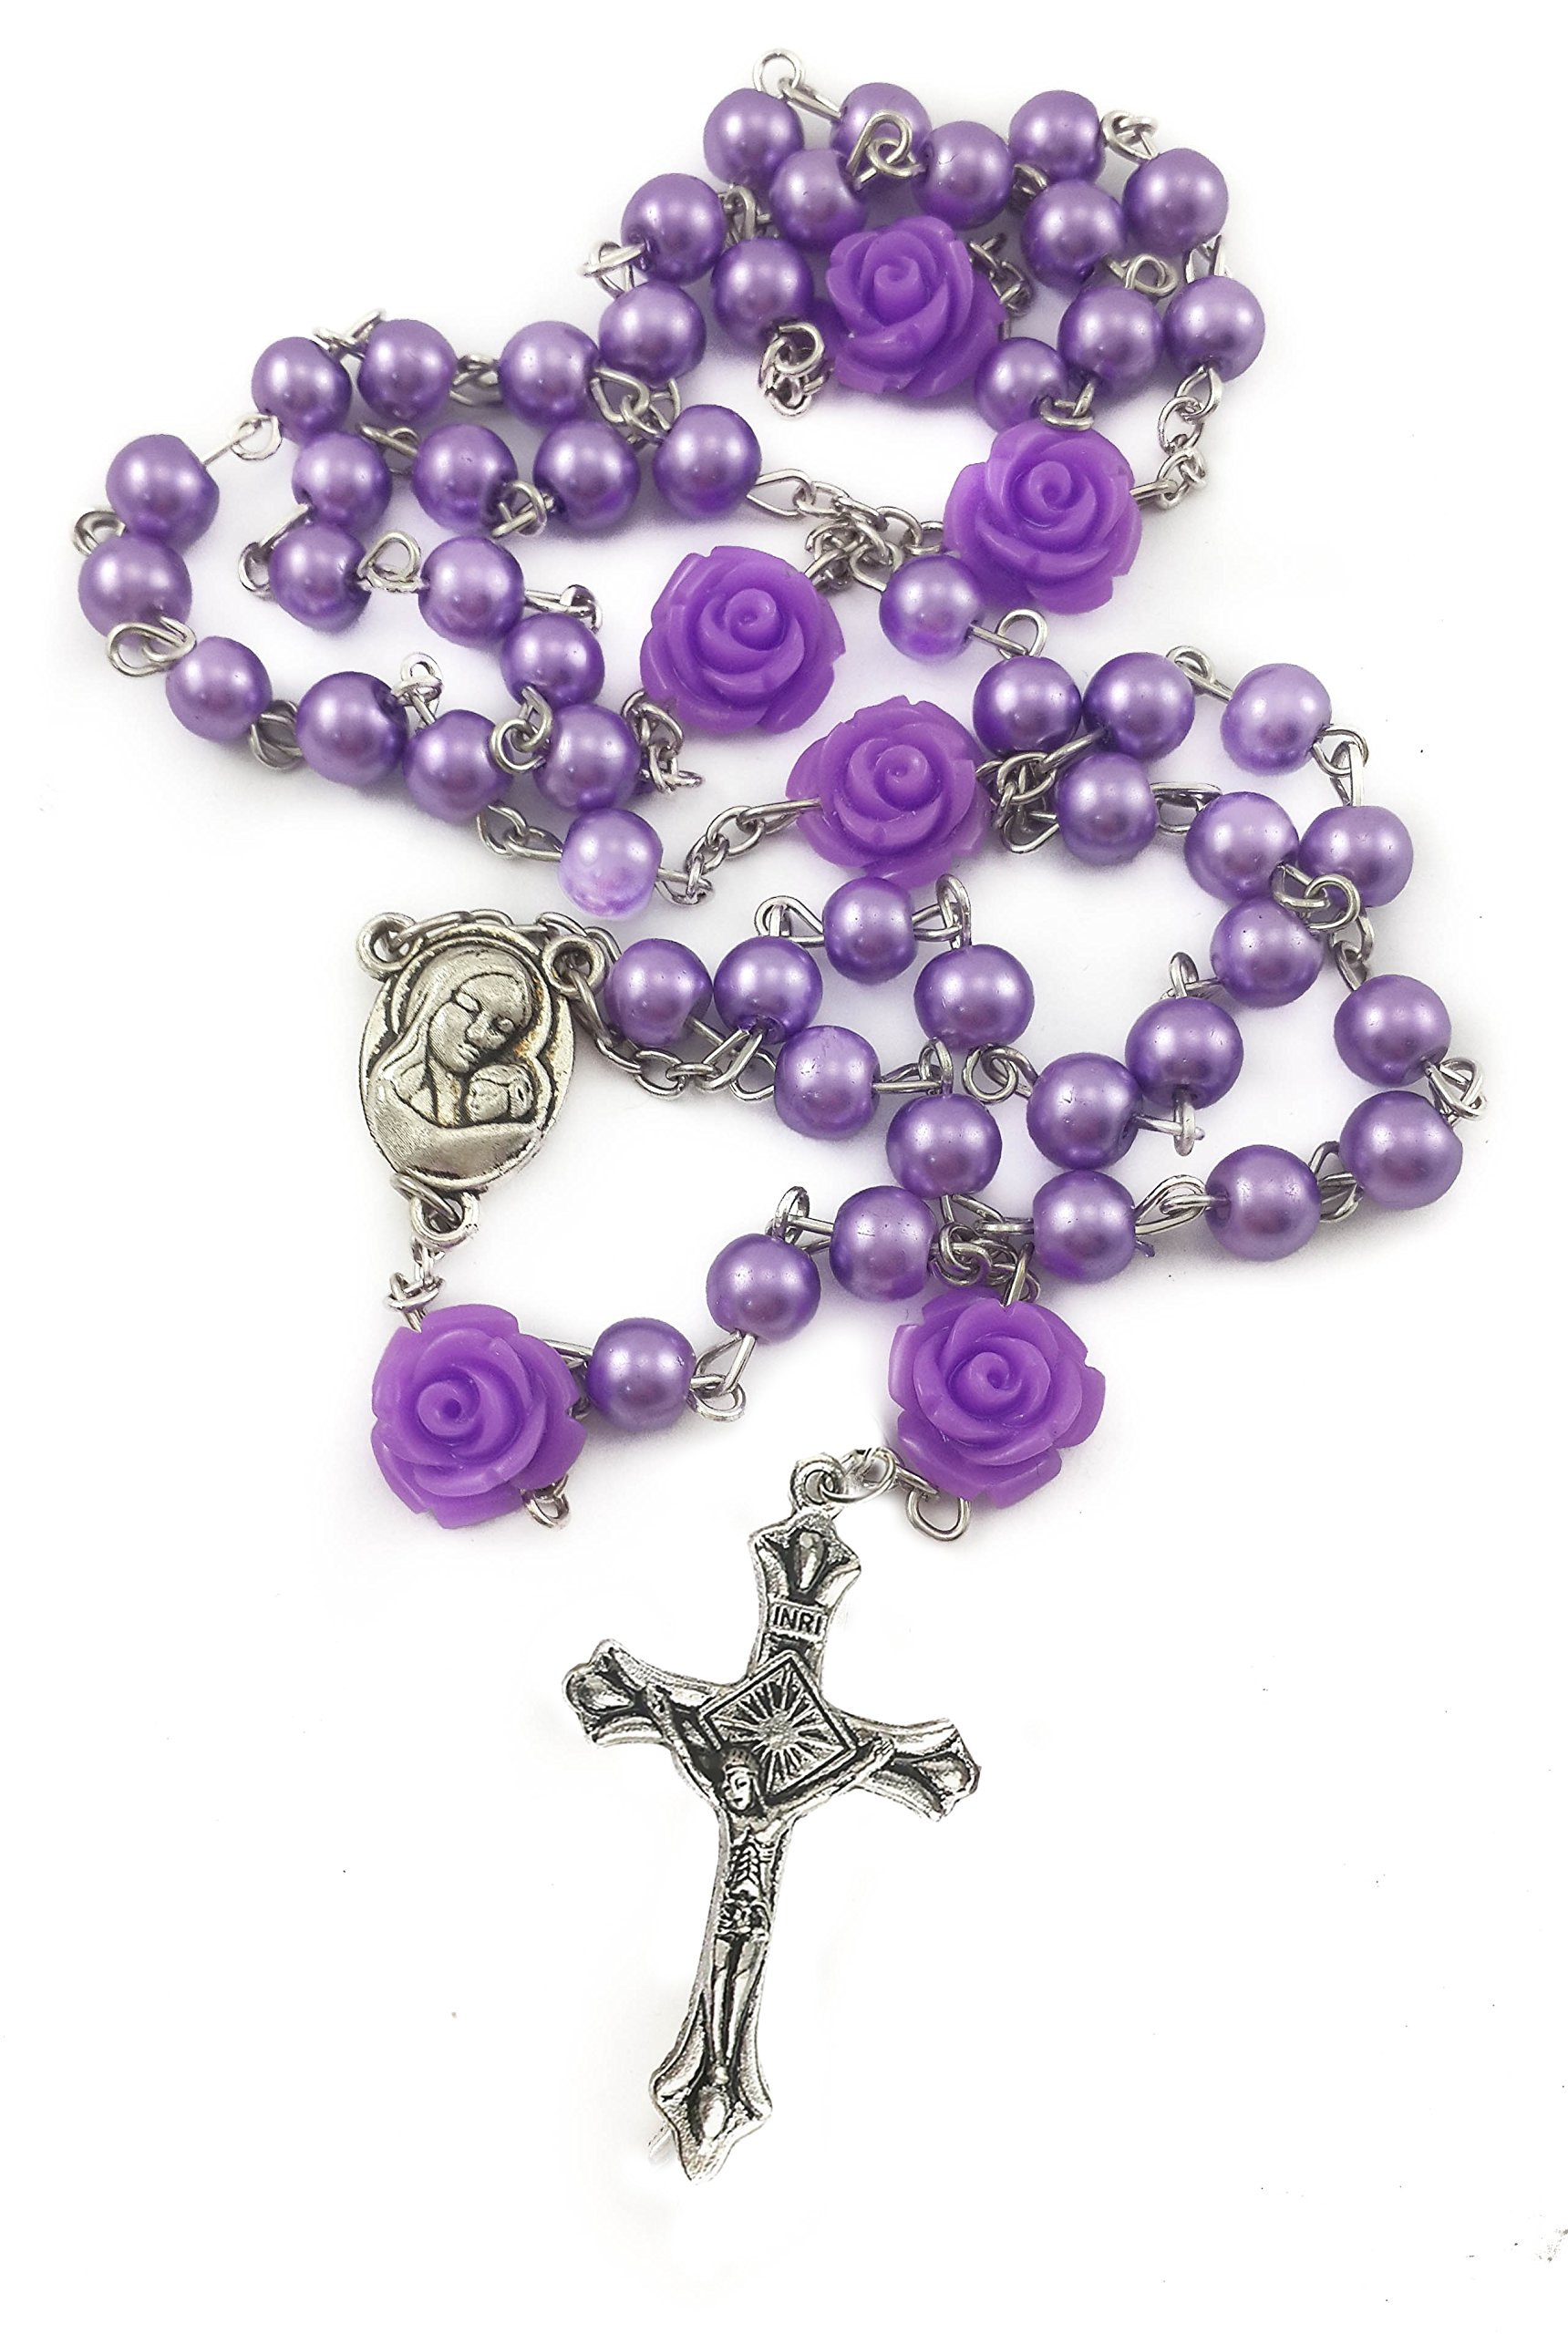 Nazareth Store Catholic Purple Pearl Beads Rosary Necklace 6mm Holy Soil Medal & Cross